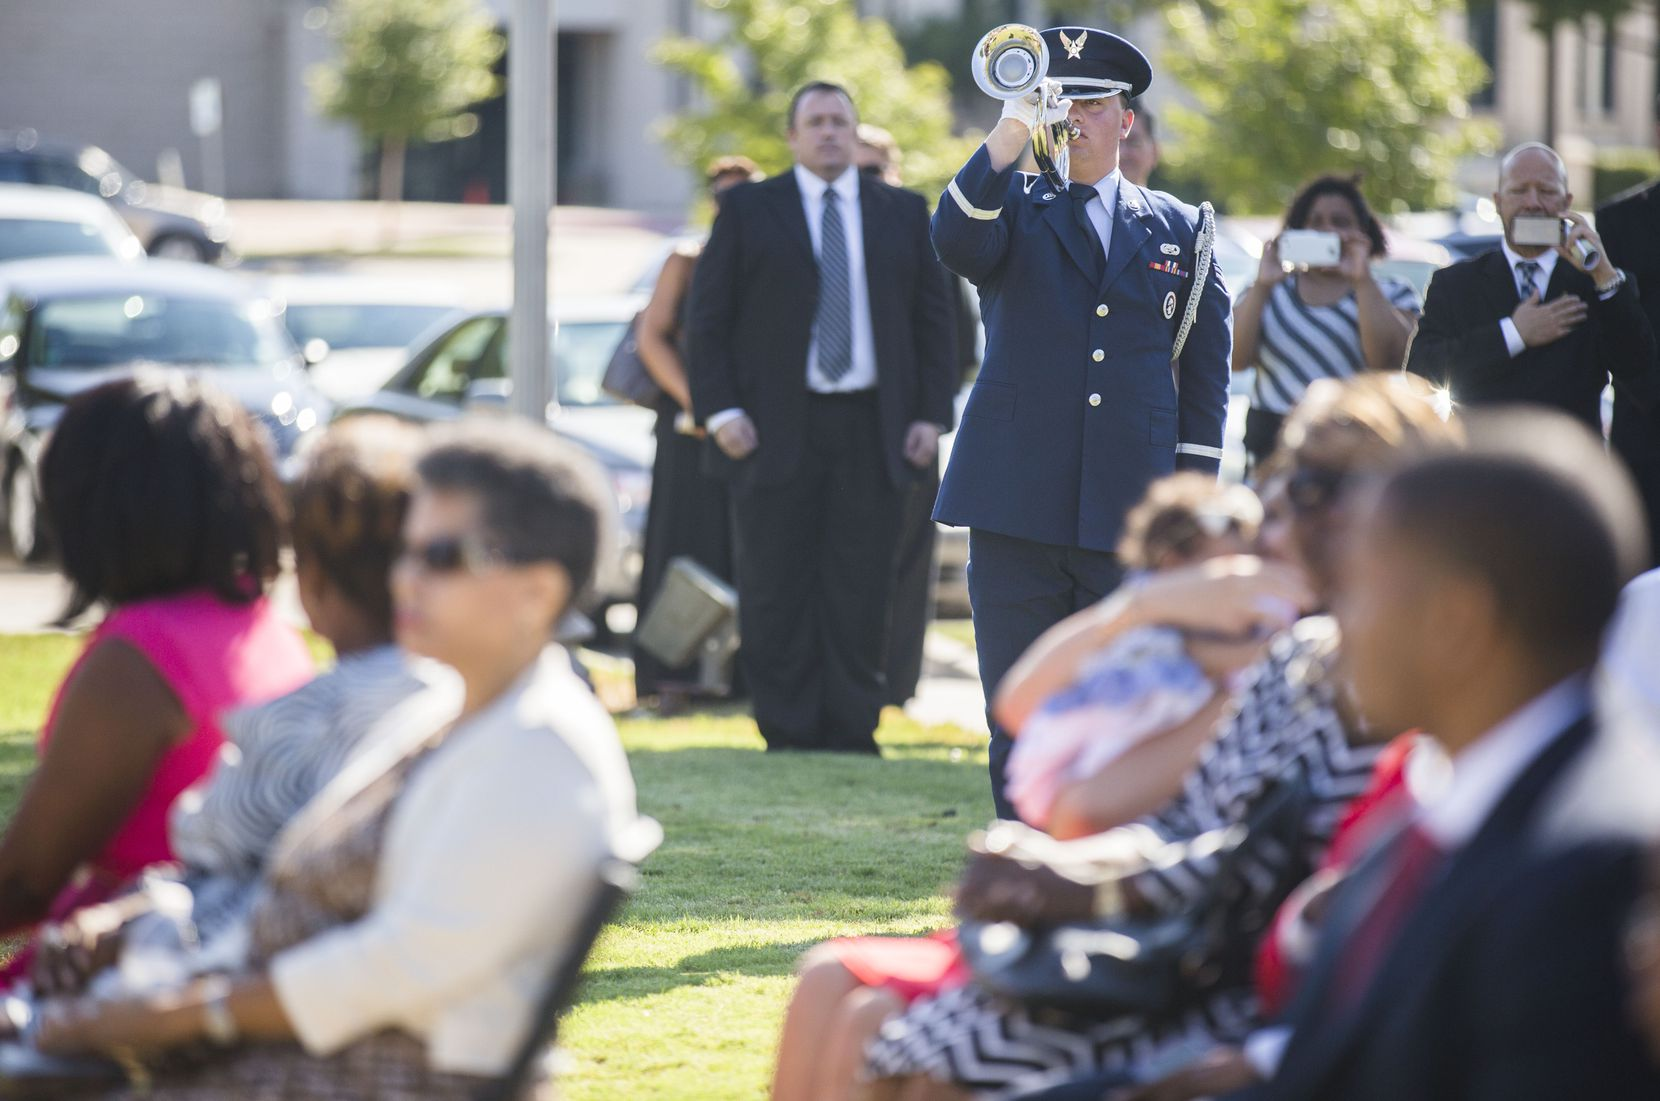 A member of a military honor guard plays a bugle during funeral services for retired Army Air Corps 1st Lieutenant Calvin Spann on Saturday, September 12, 2015 at Covenant Church in Carrollton, Texas.  Spann was an original Tuskegee Airman and fighter pilot with the 100th Fighter Squadron of the 332nd Fighter Group.  He served during World War II, when he flew 26 combat missions. (Ashley Landis/The Dallas Morning News)